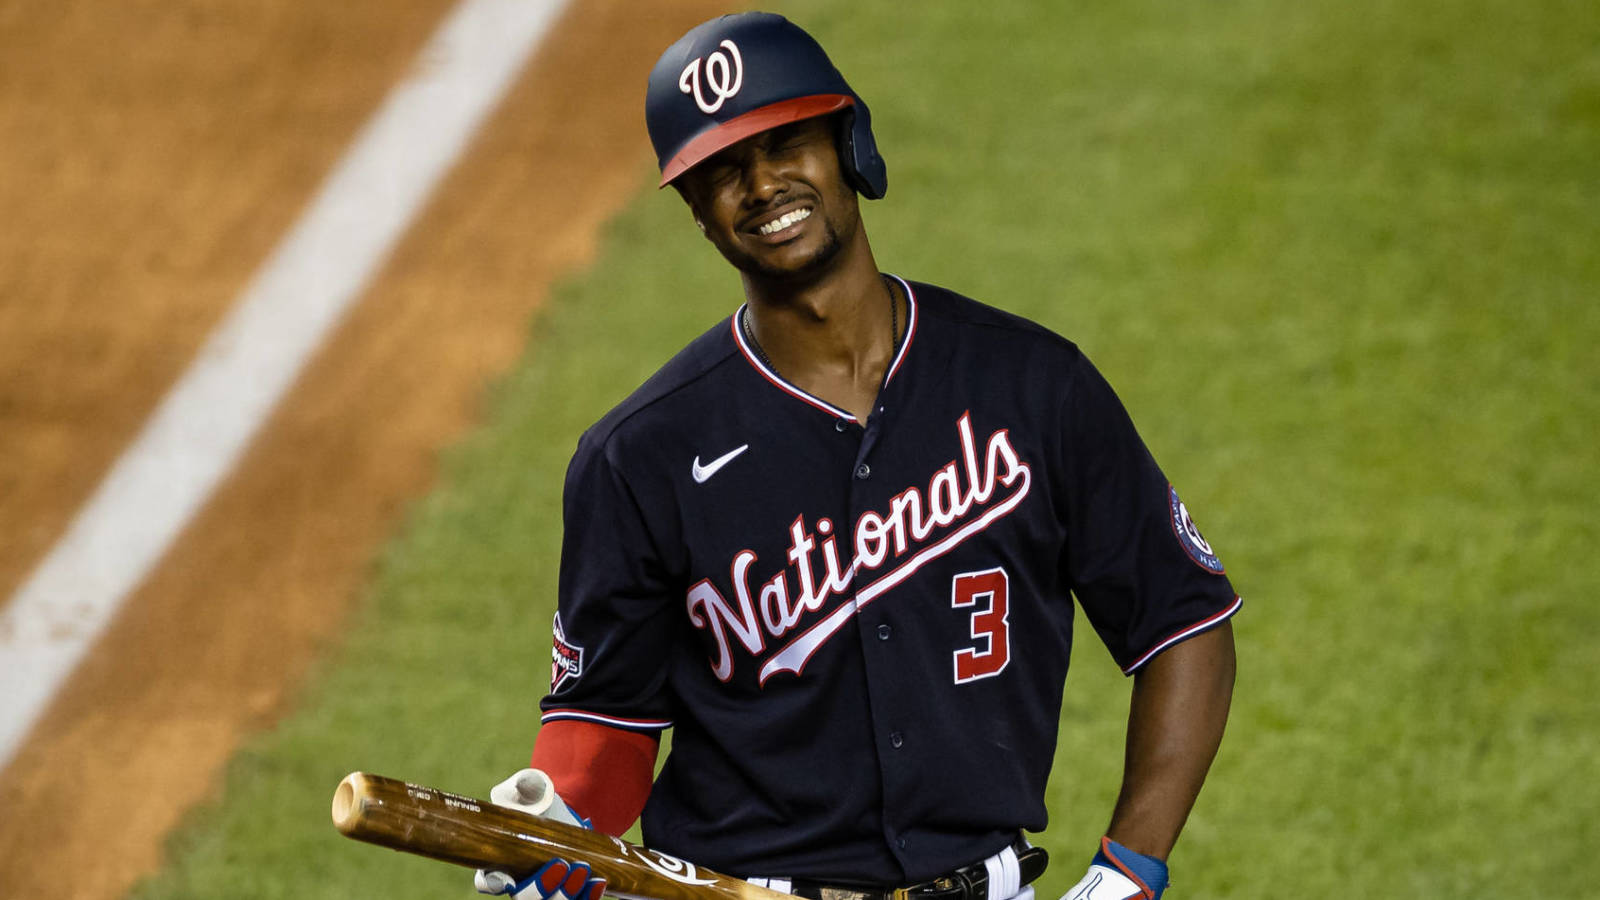 Nationals OF Michael A. Taylor clears waivers, elects free agency